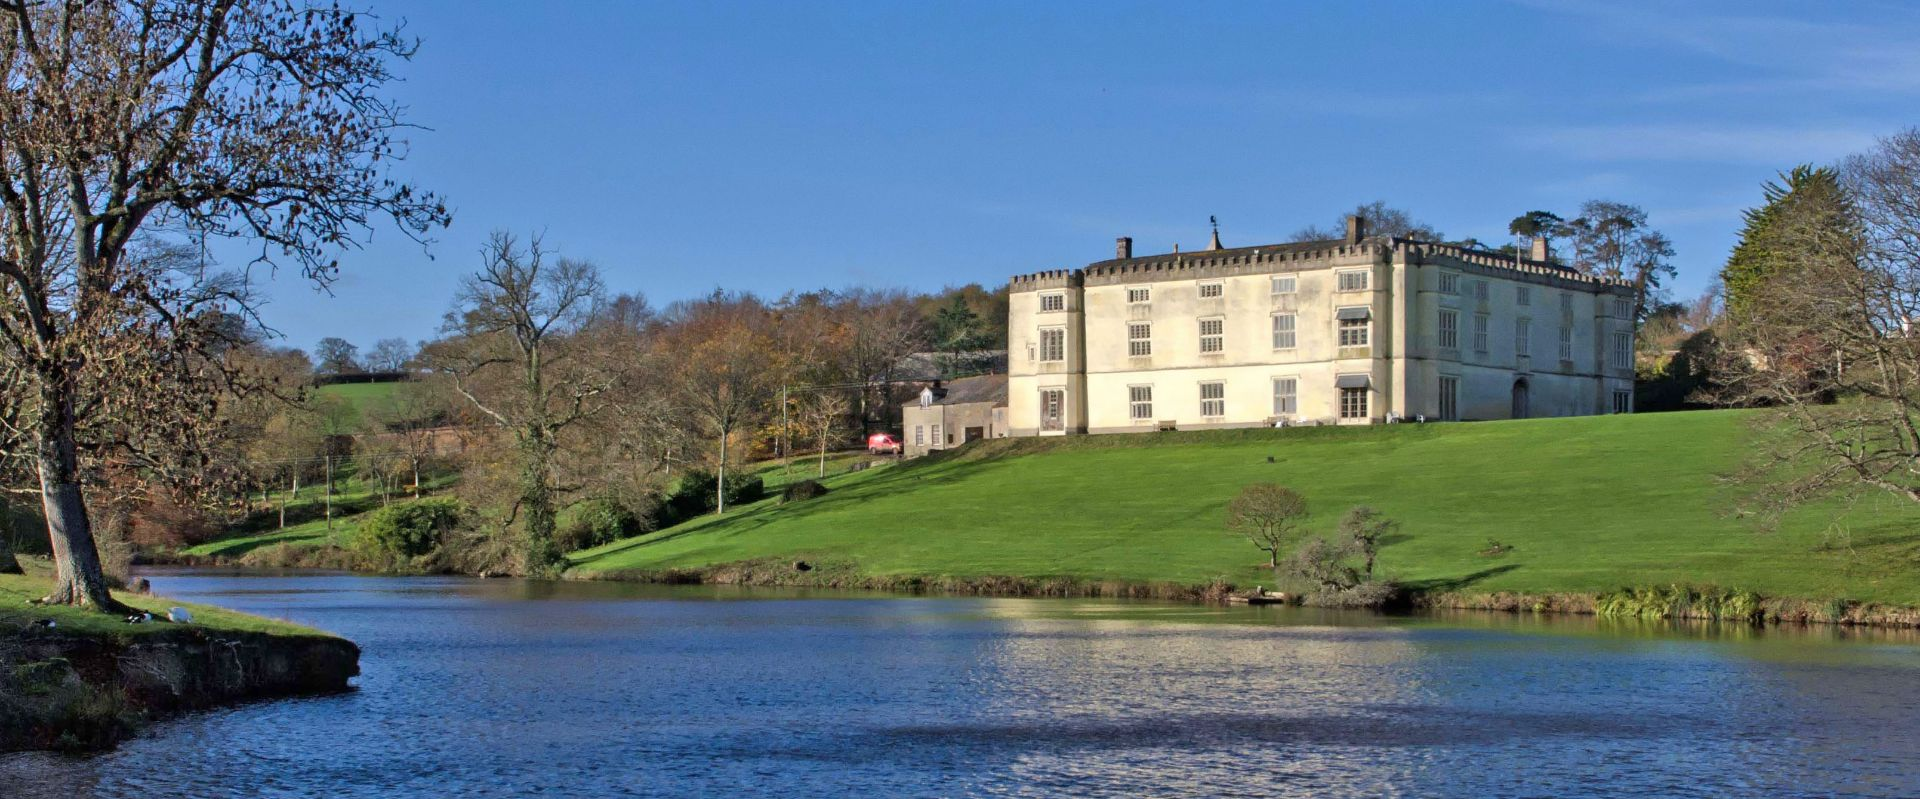 The lake and house at Great Fulford